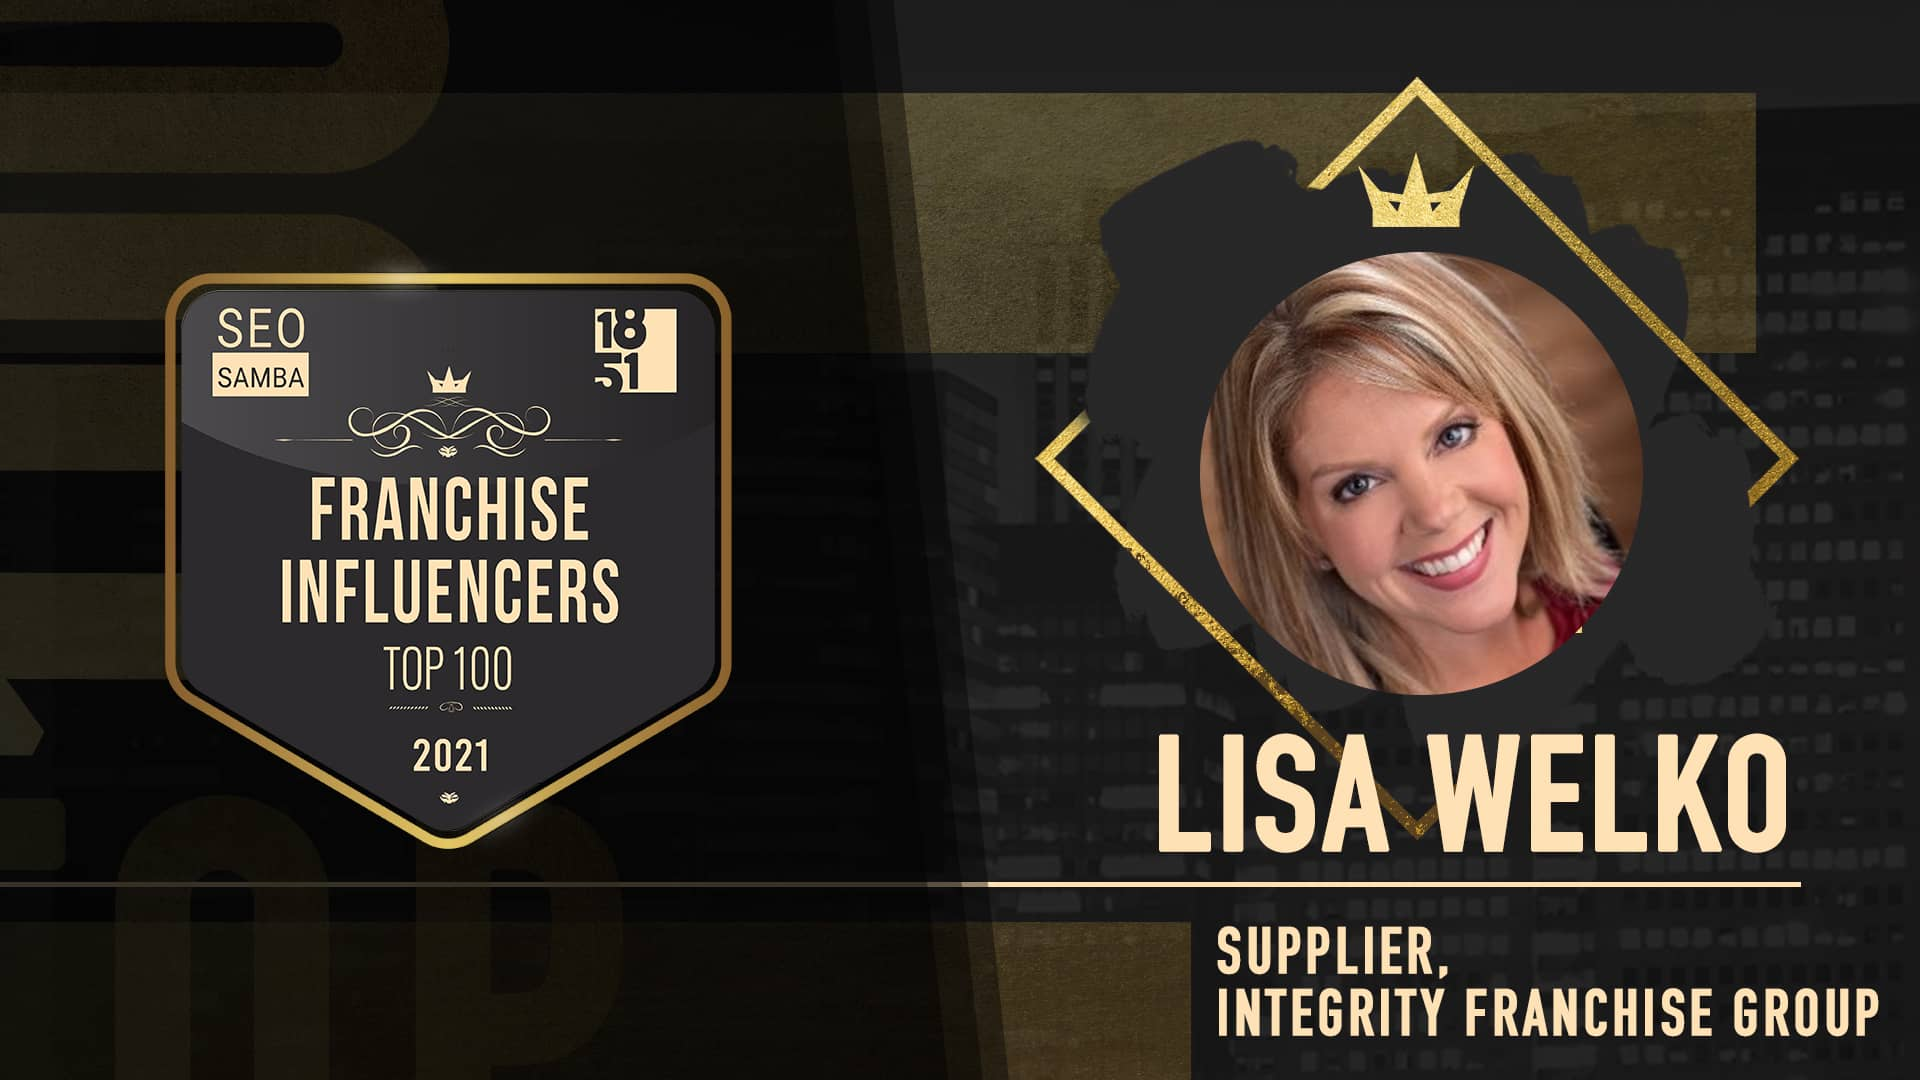 Lisa Welko - Integrity Franchise Group